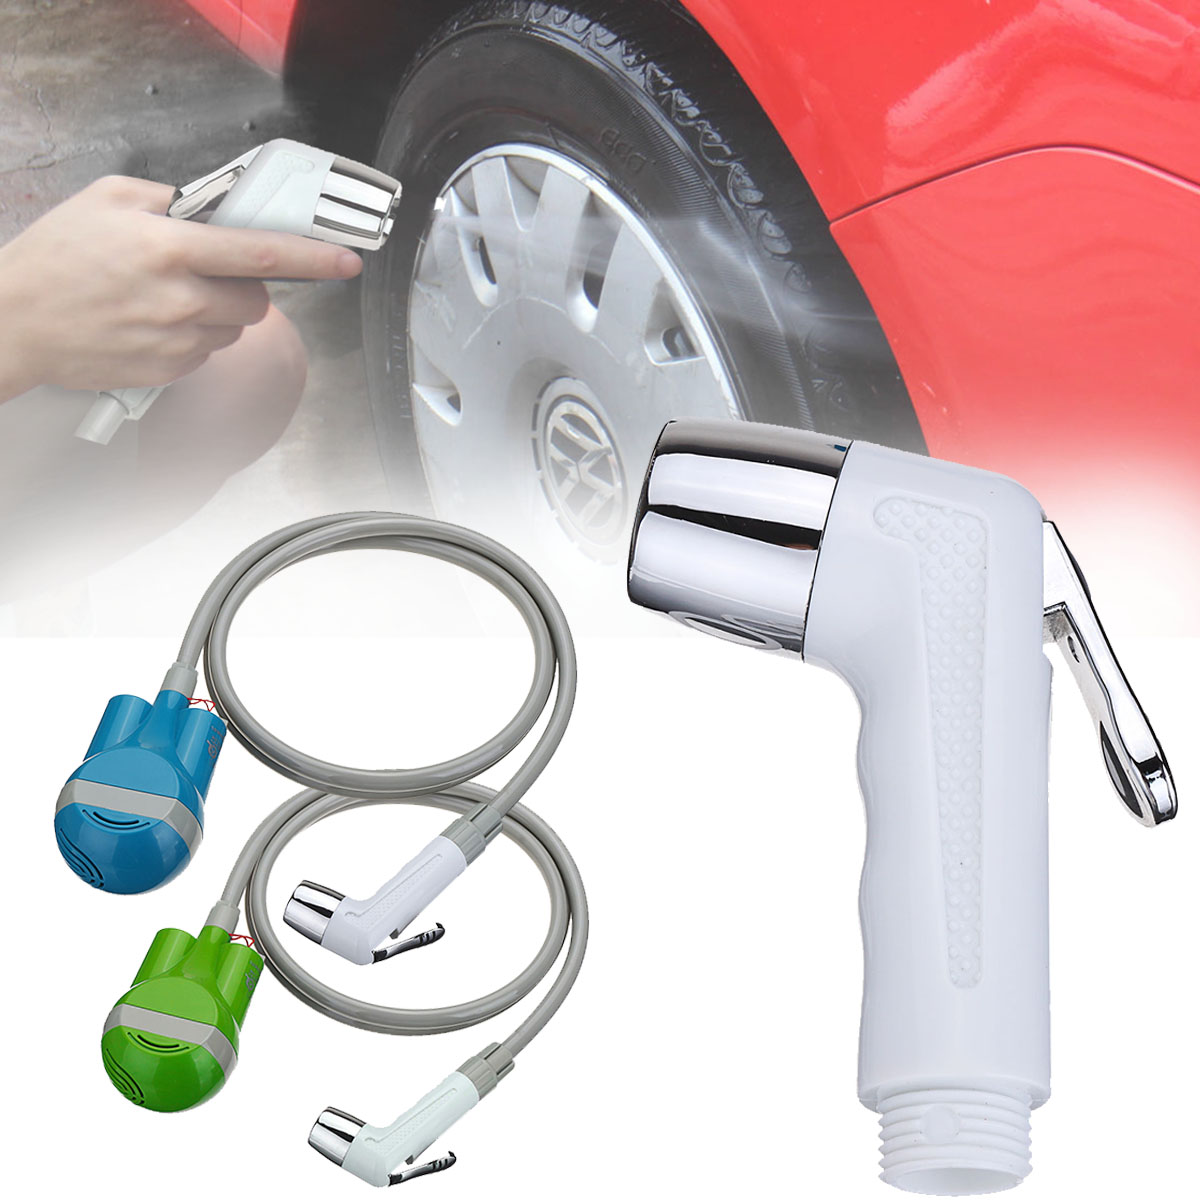 Cleaner Shower-Set Washing-Sprayer Caravan Water-Pump Bath Rechargeable Camping Travel title=